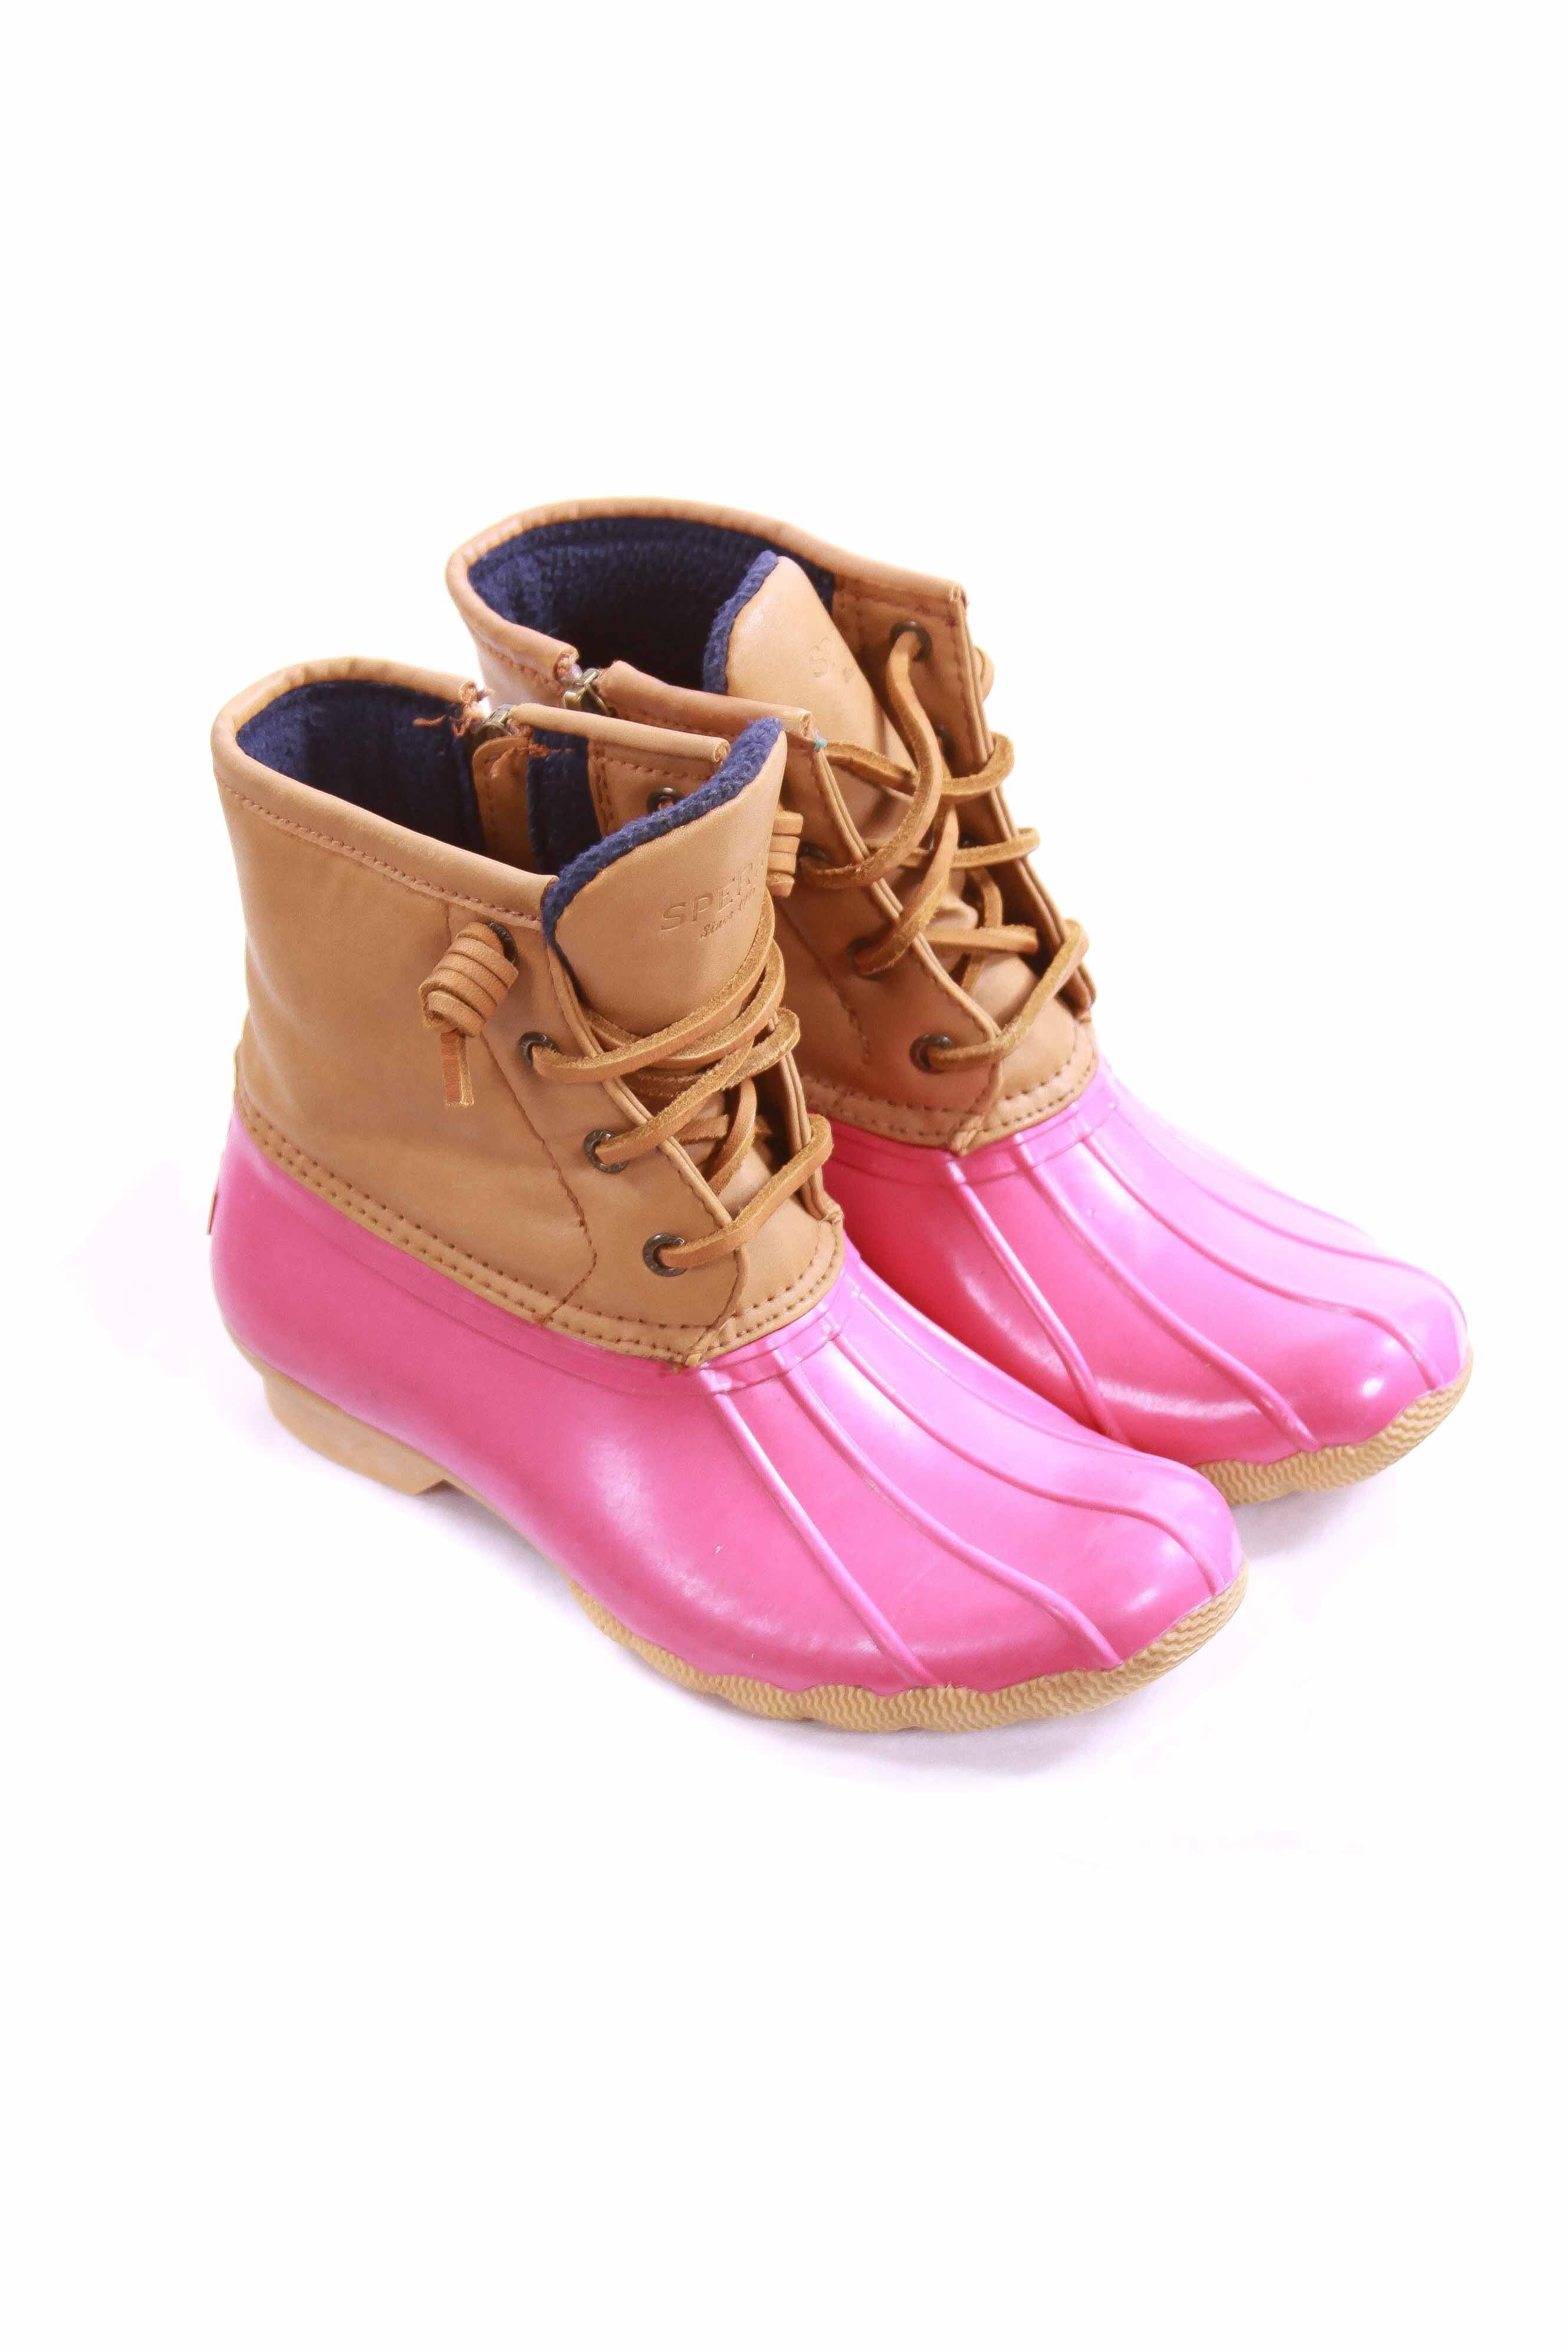 31d3df161 SPERRY HOT PINK AND TAN SALTWATER DUCK BOOTS CHILD SIZE 2 *EUC